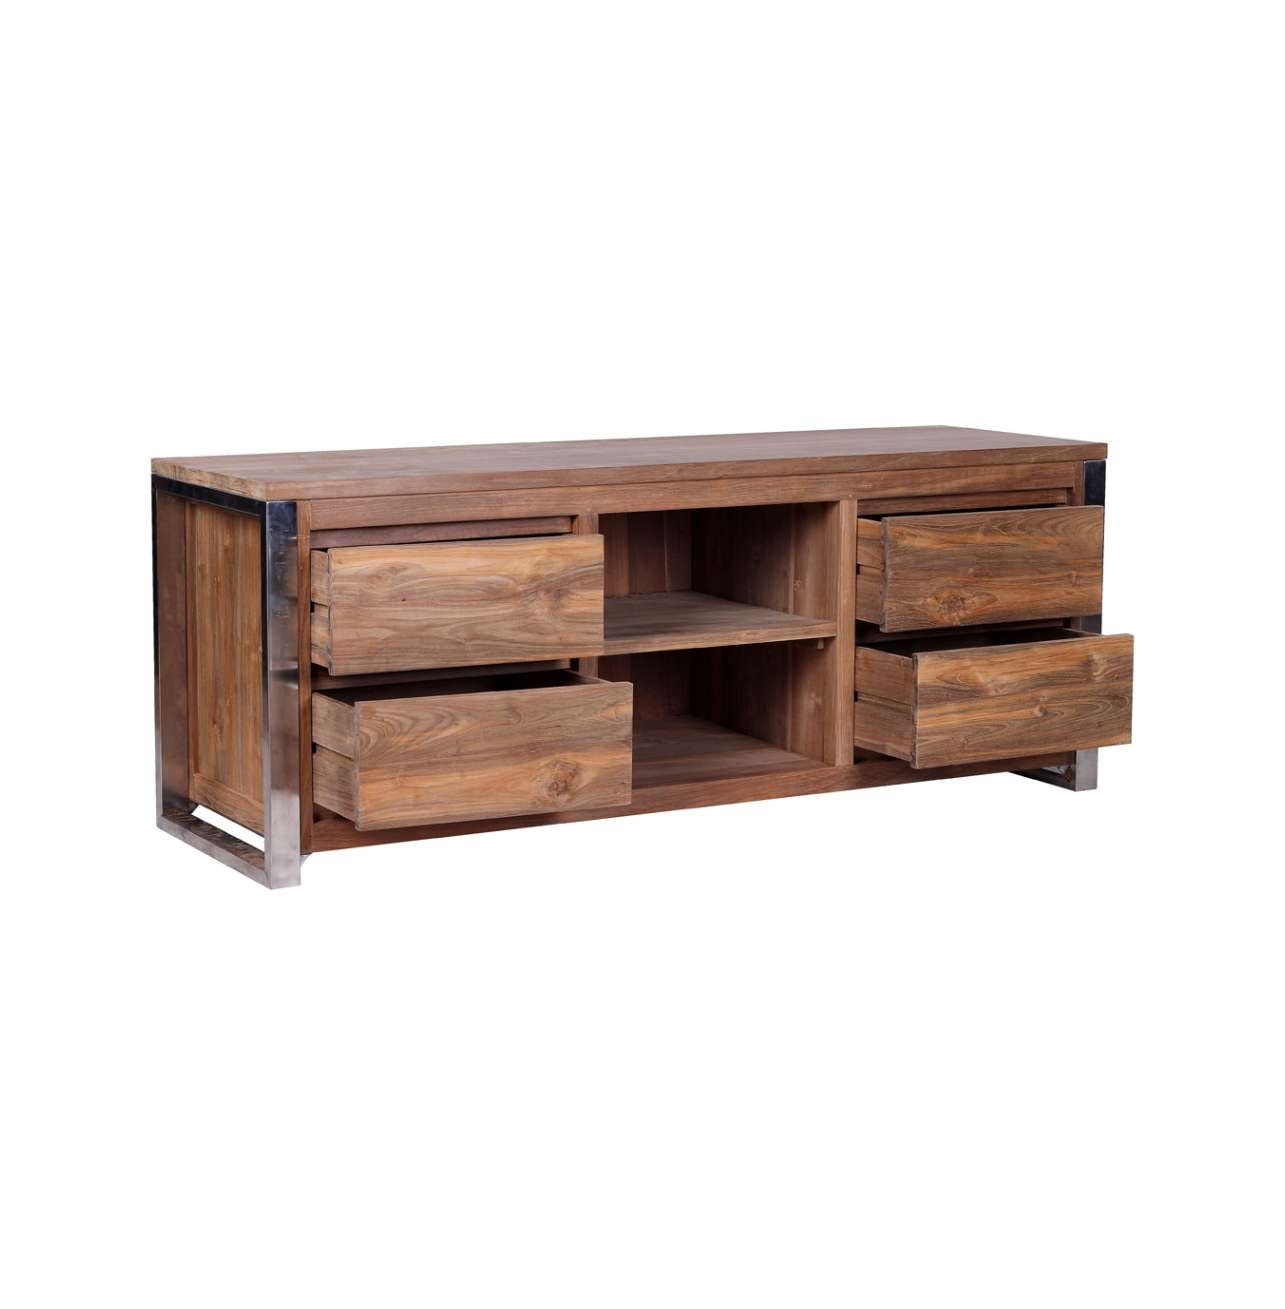 Rarem Reclaimed Wood Tv Stand – Reclaimed Teak And Stainless Steel Intended For Reclaimed Wood And Metal Tv Stands (View 12 of 20)